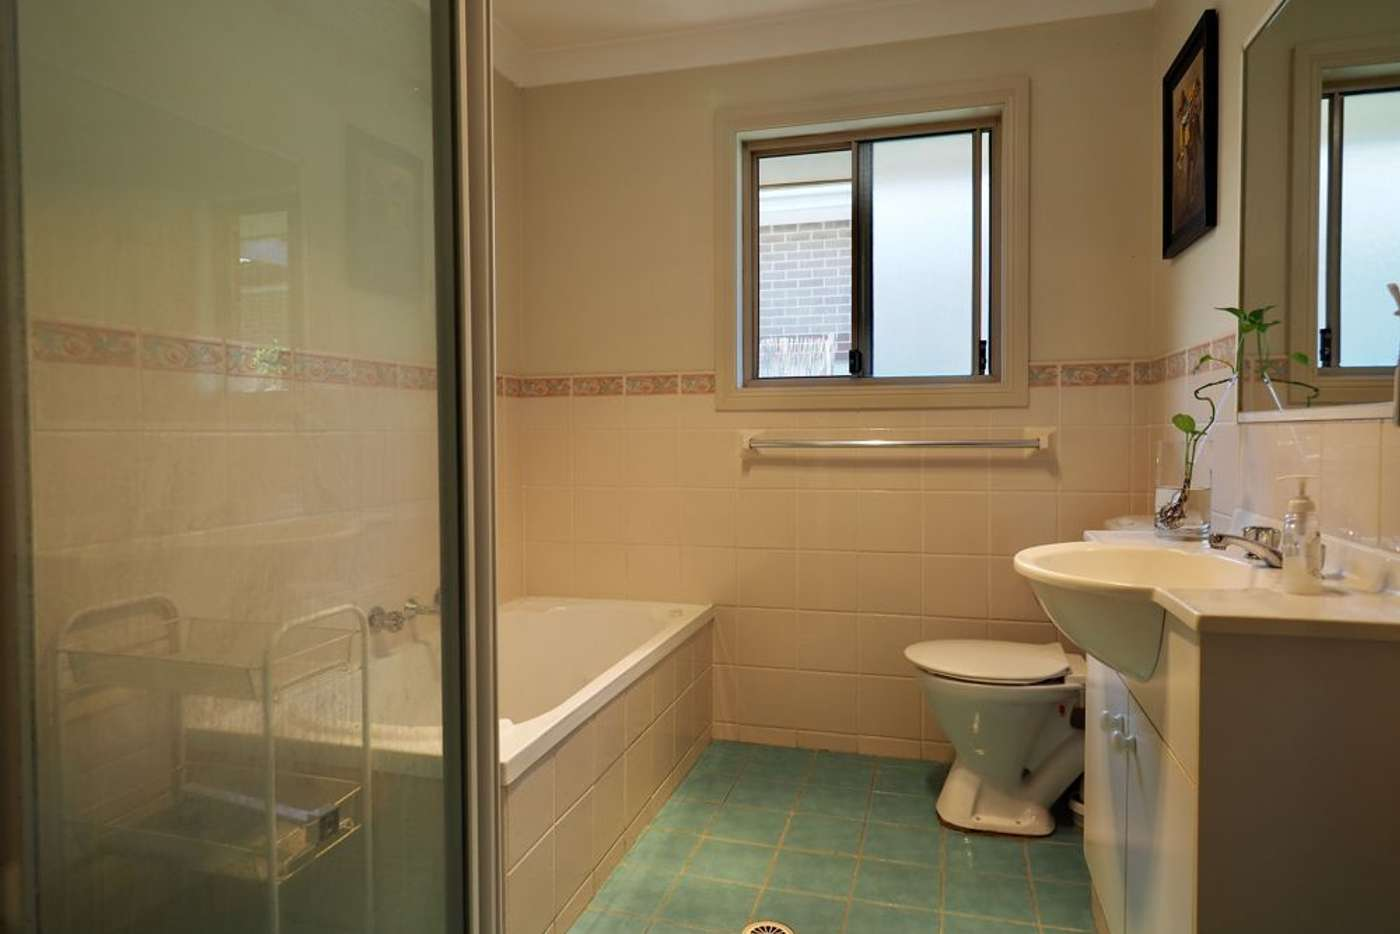 Seventh view of Homely house listing, 1/16 Canberra Street, Oxley Park NSW 2760